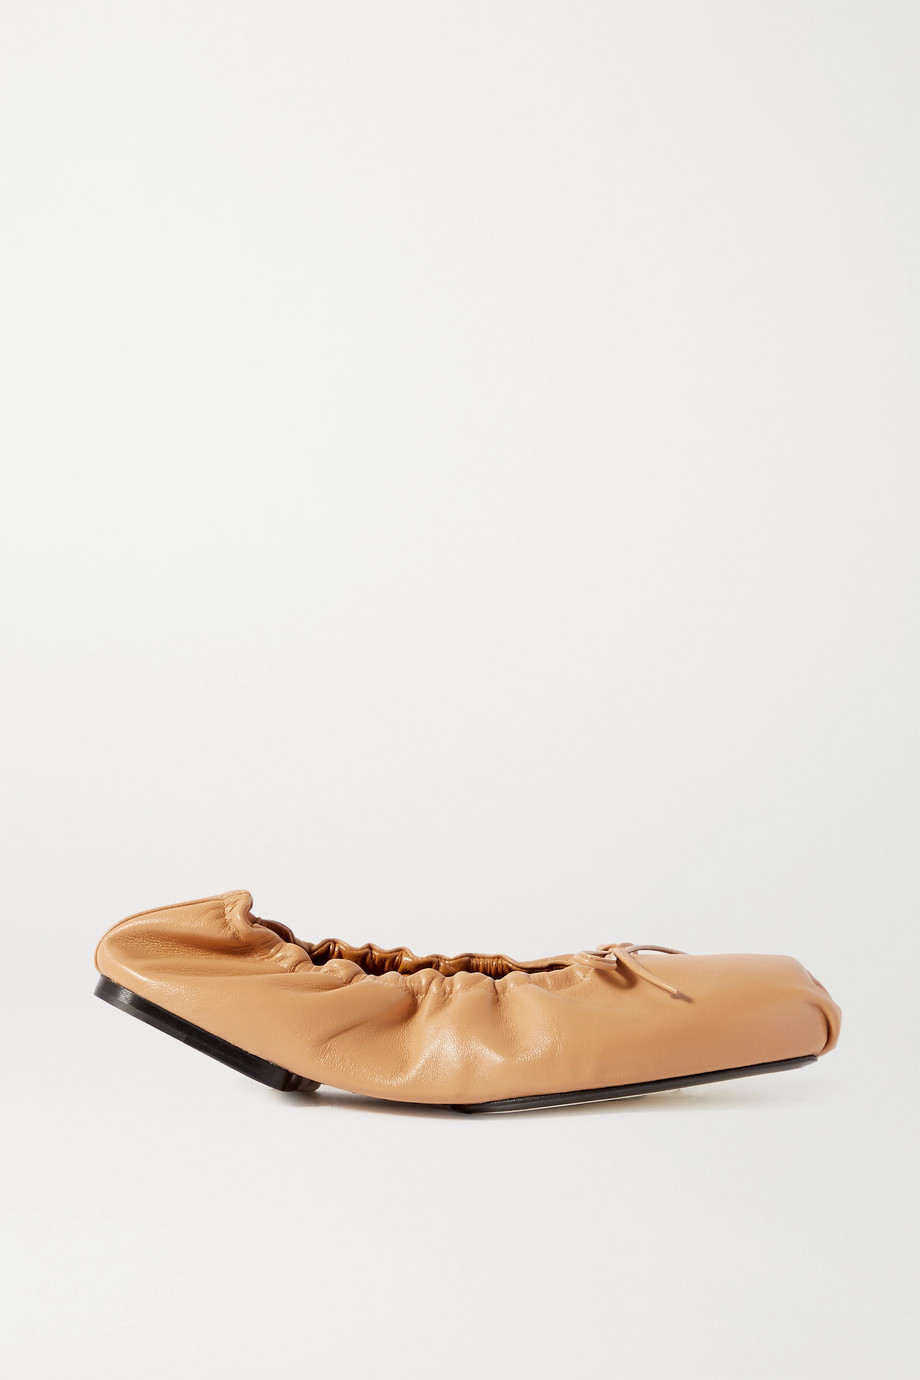 Khaite Ashland bow-embellished leather ballet flats